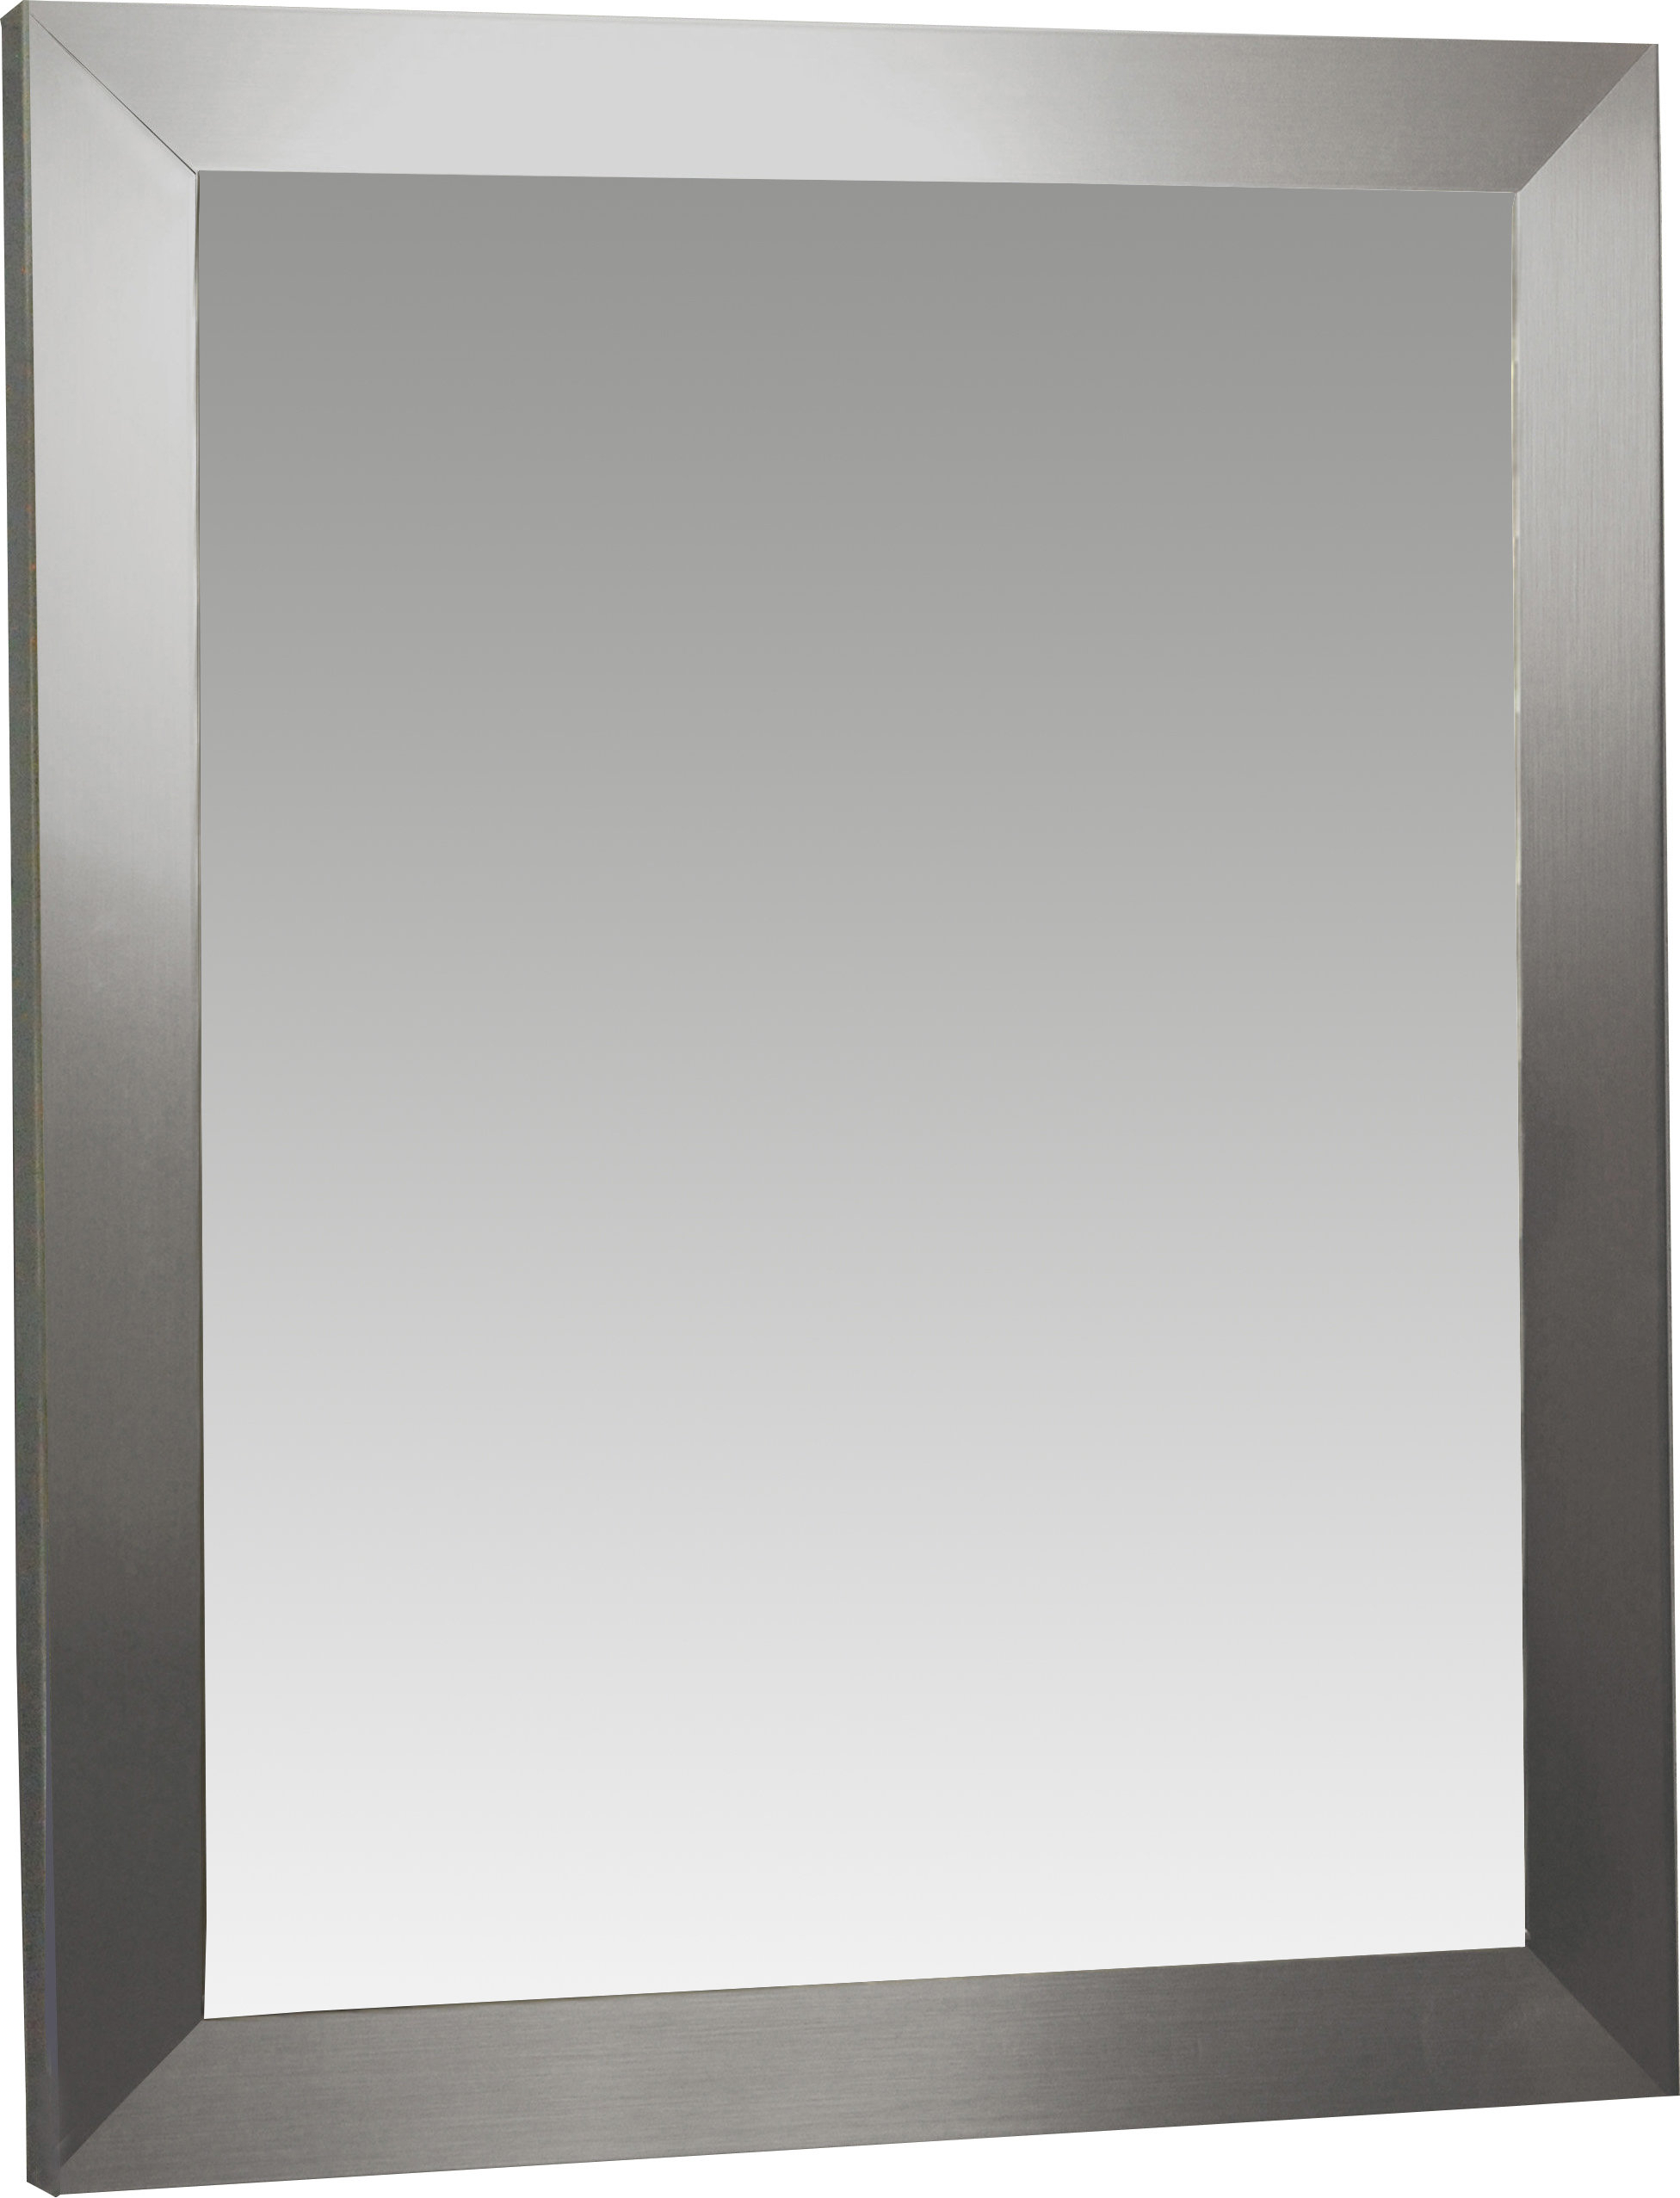 Modern & Contemporary Modern Wall Mirror | Allmodern Inside Colton Modern & Contemporary Wall Mirrors (View 26 of 30)